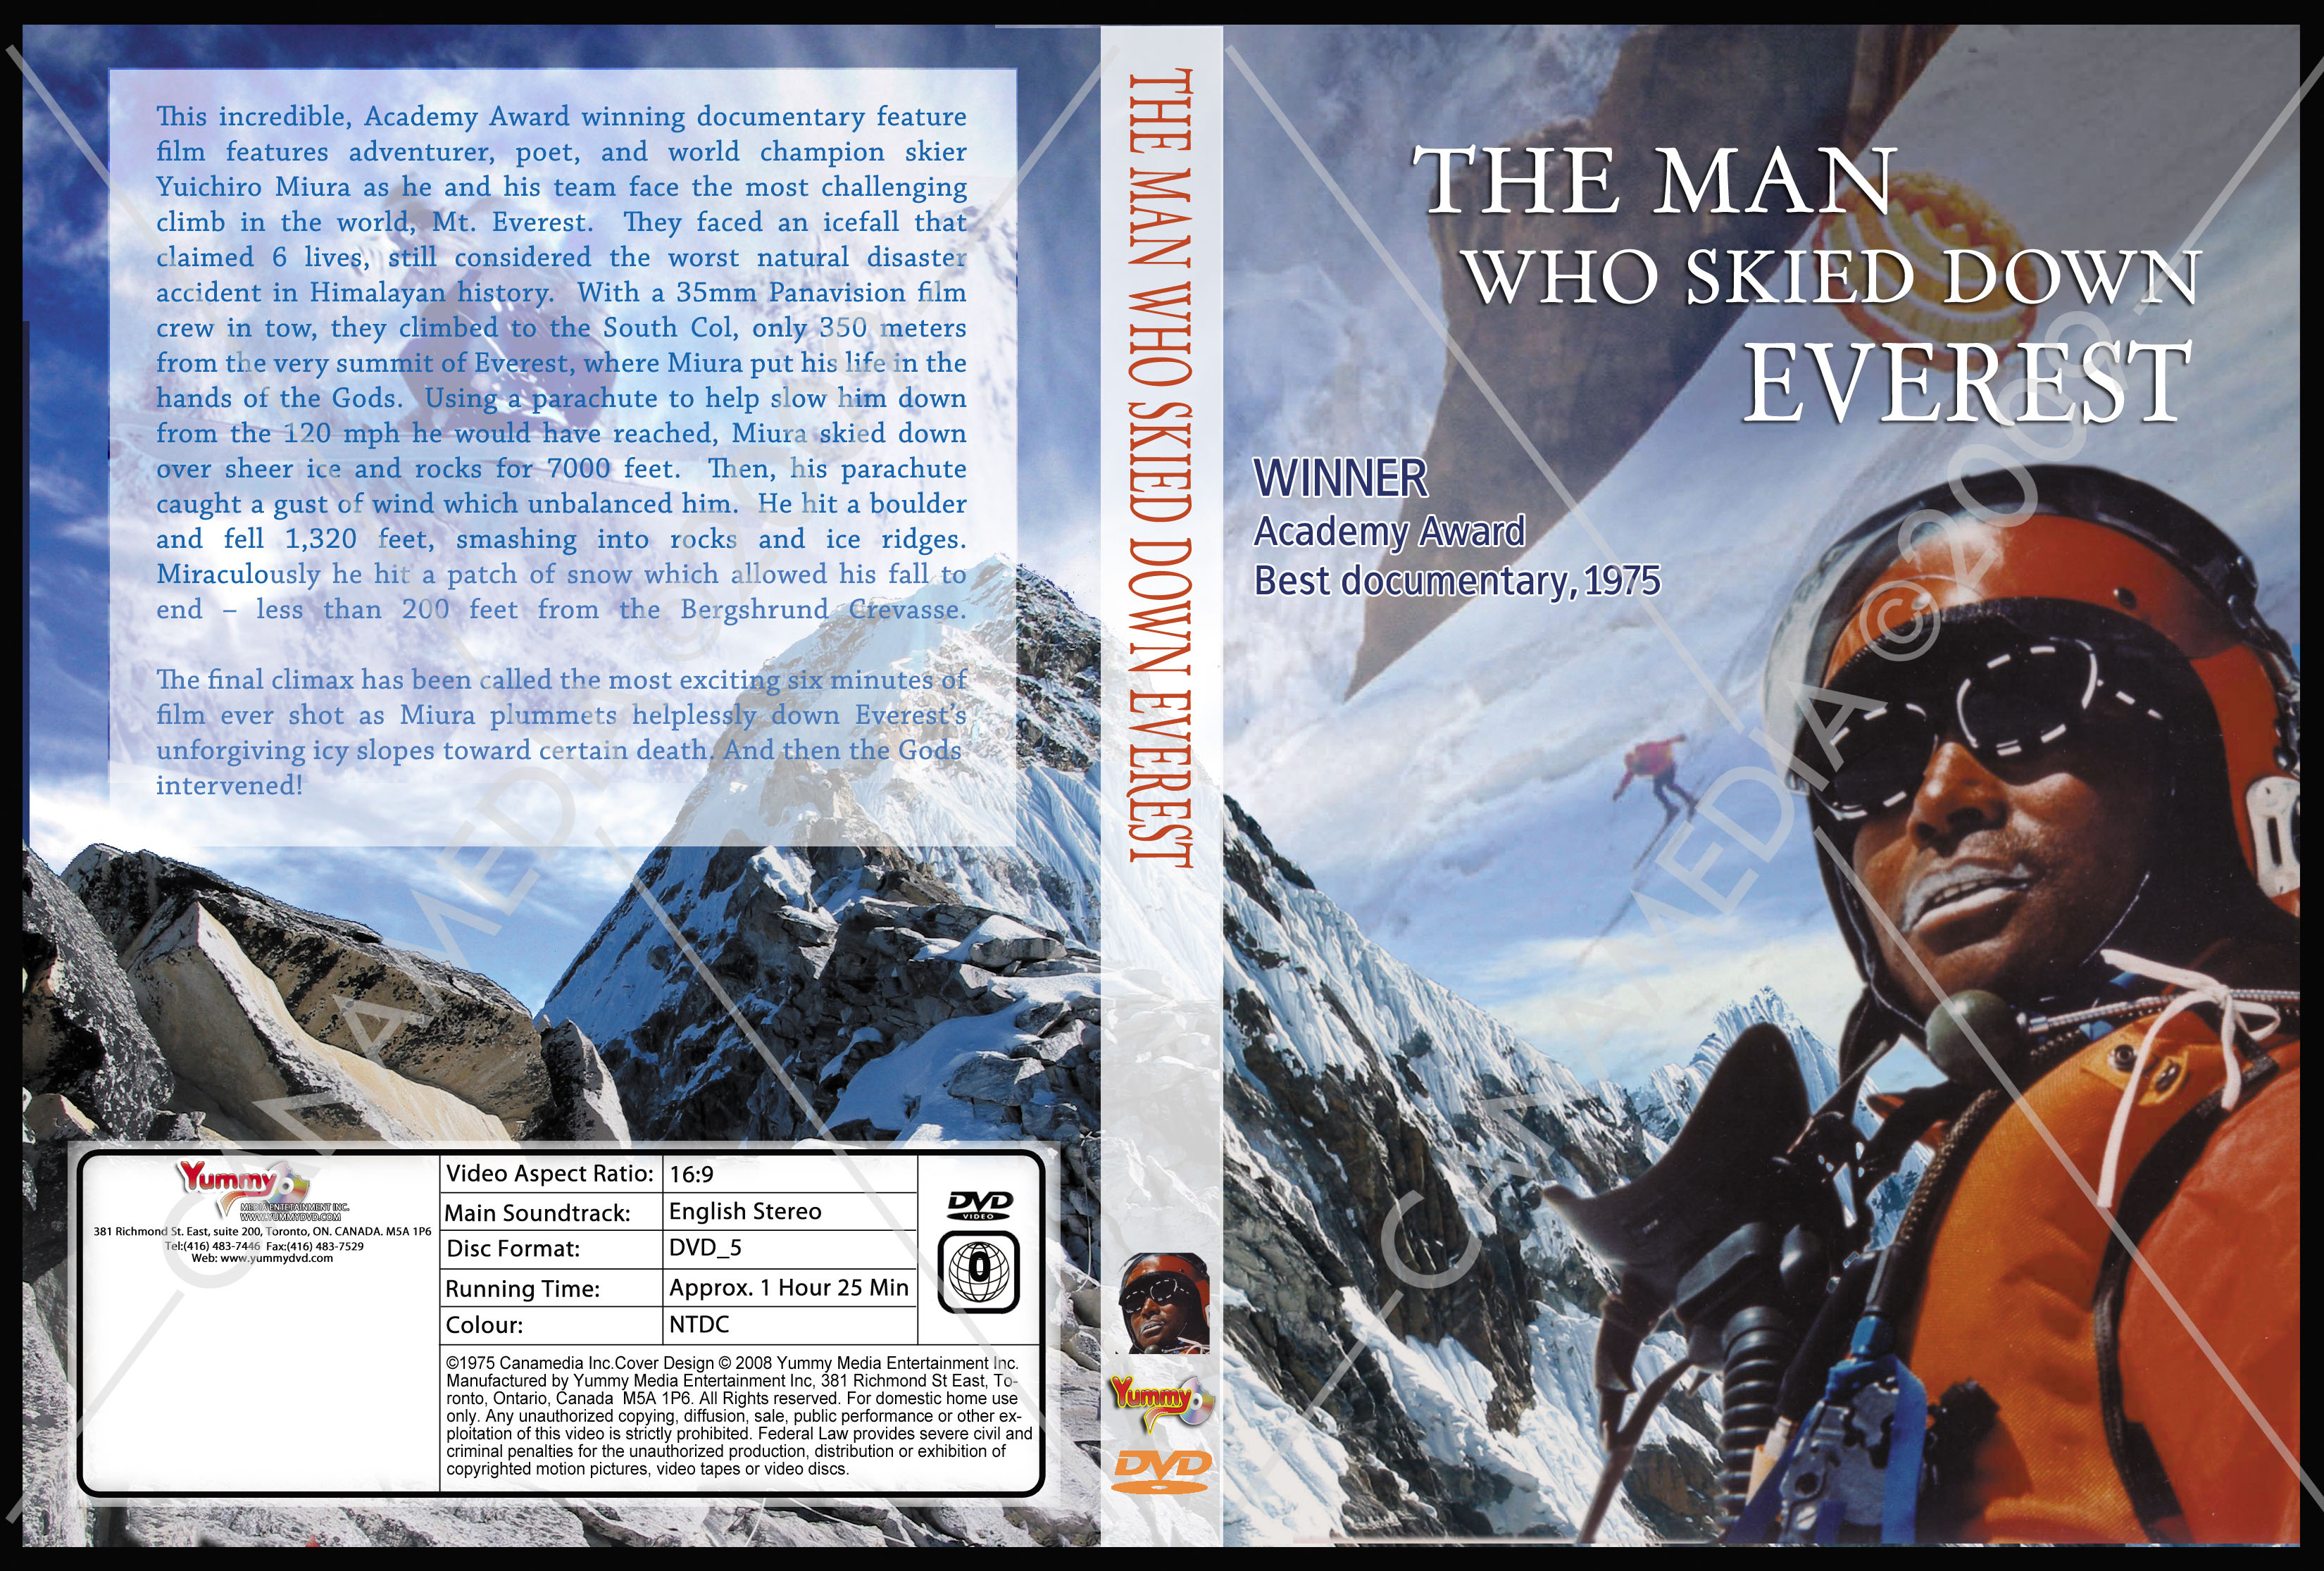 The Man Who Skied Down Everest_DVDcover